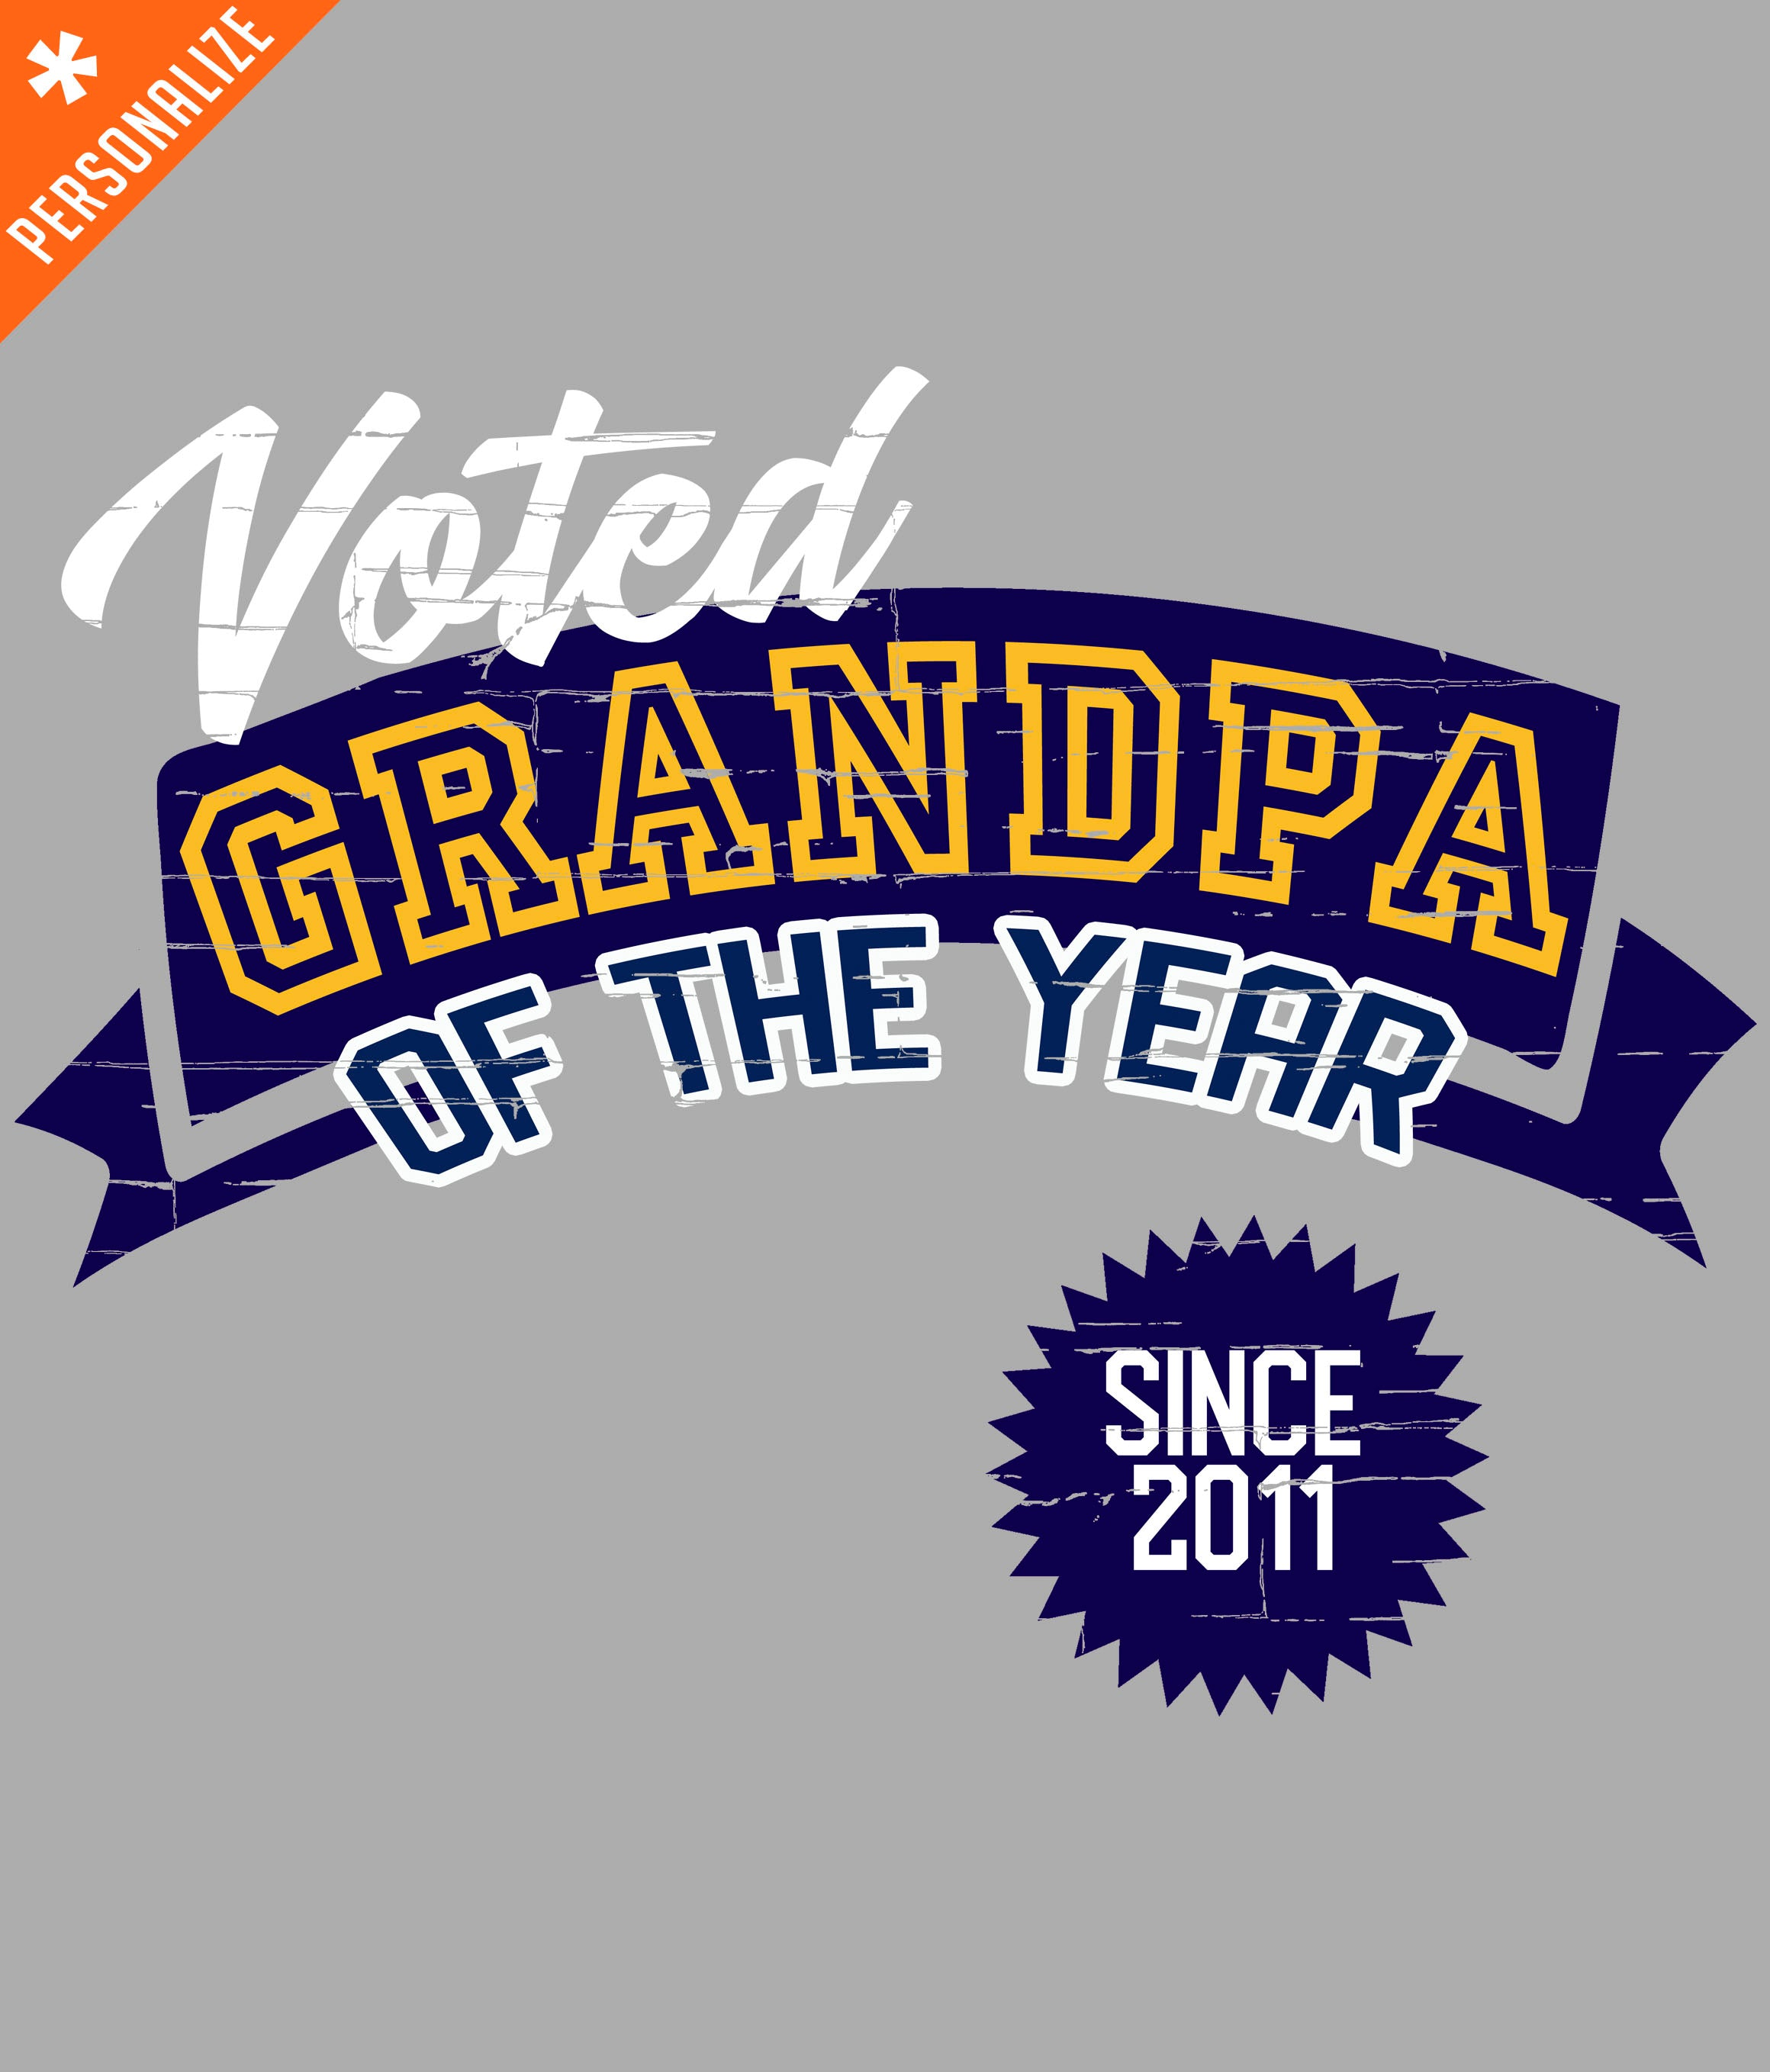 GRANDPA OF THE YEAR PERSONALIZED T-SHIRT DESIGN